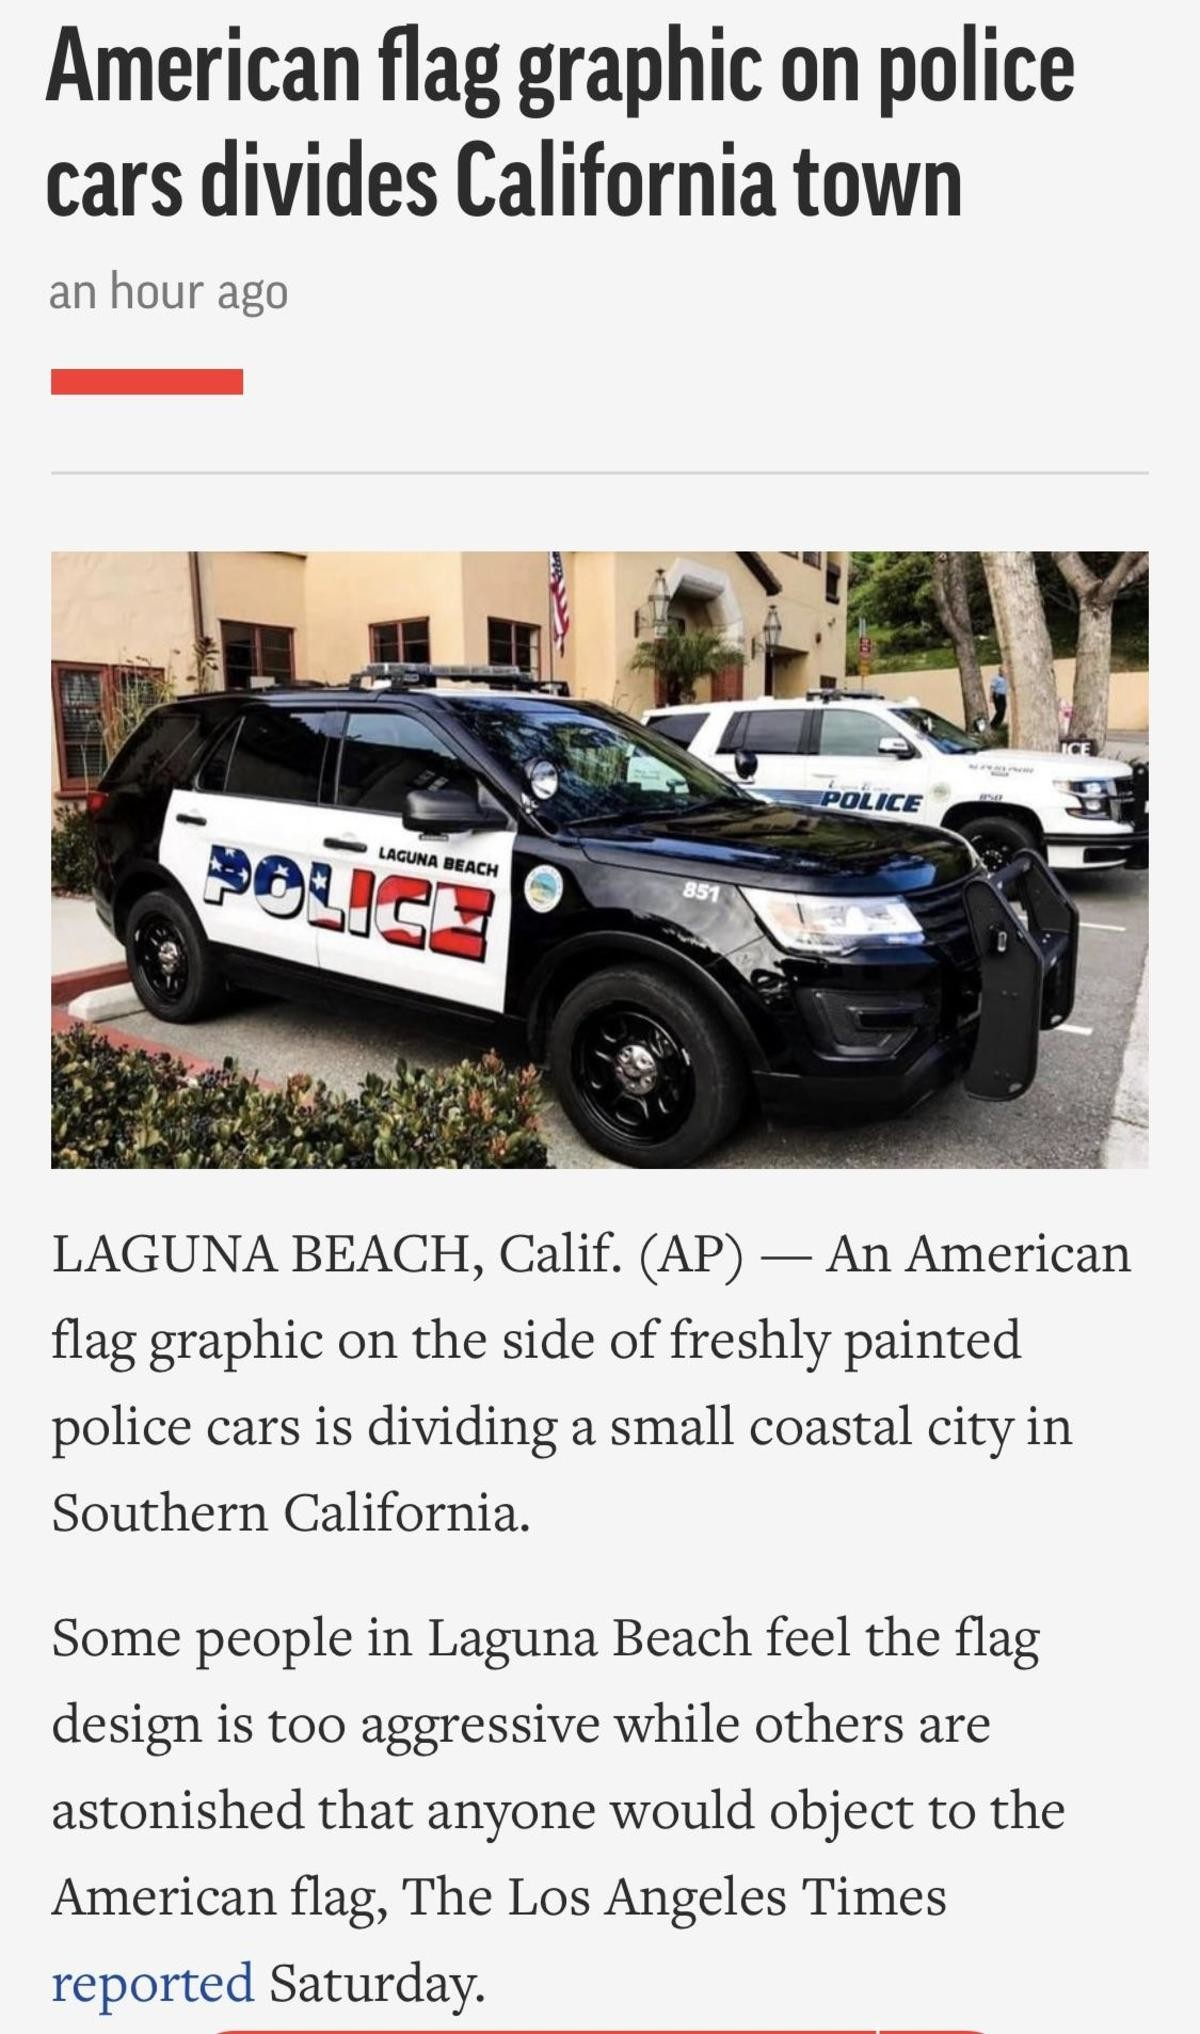 Red white and blue. Red white and blue to libs is like garlic to a vampire... California is anti America. Nothing new